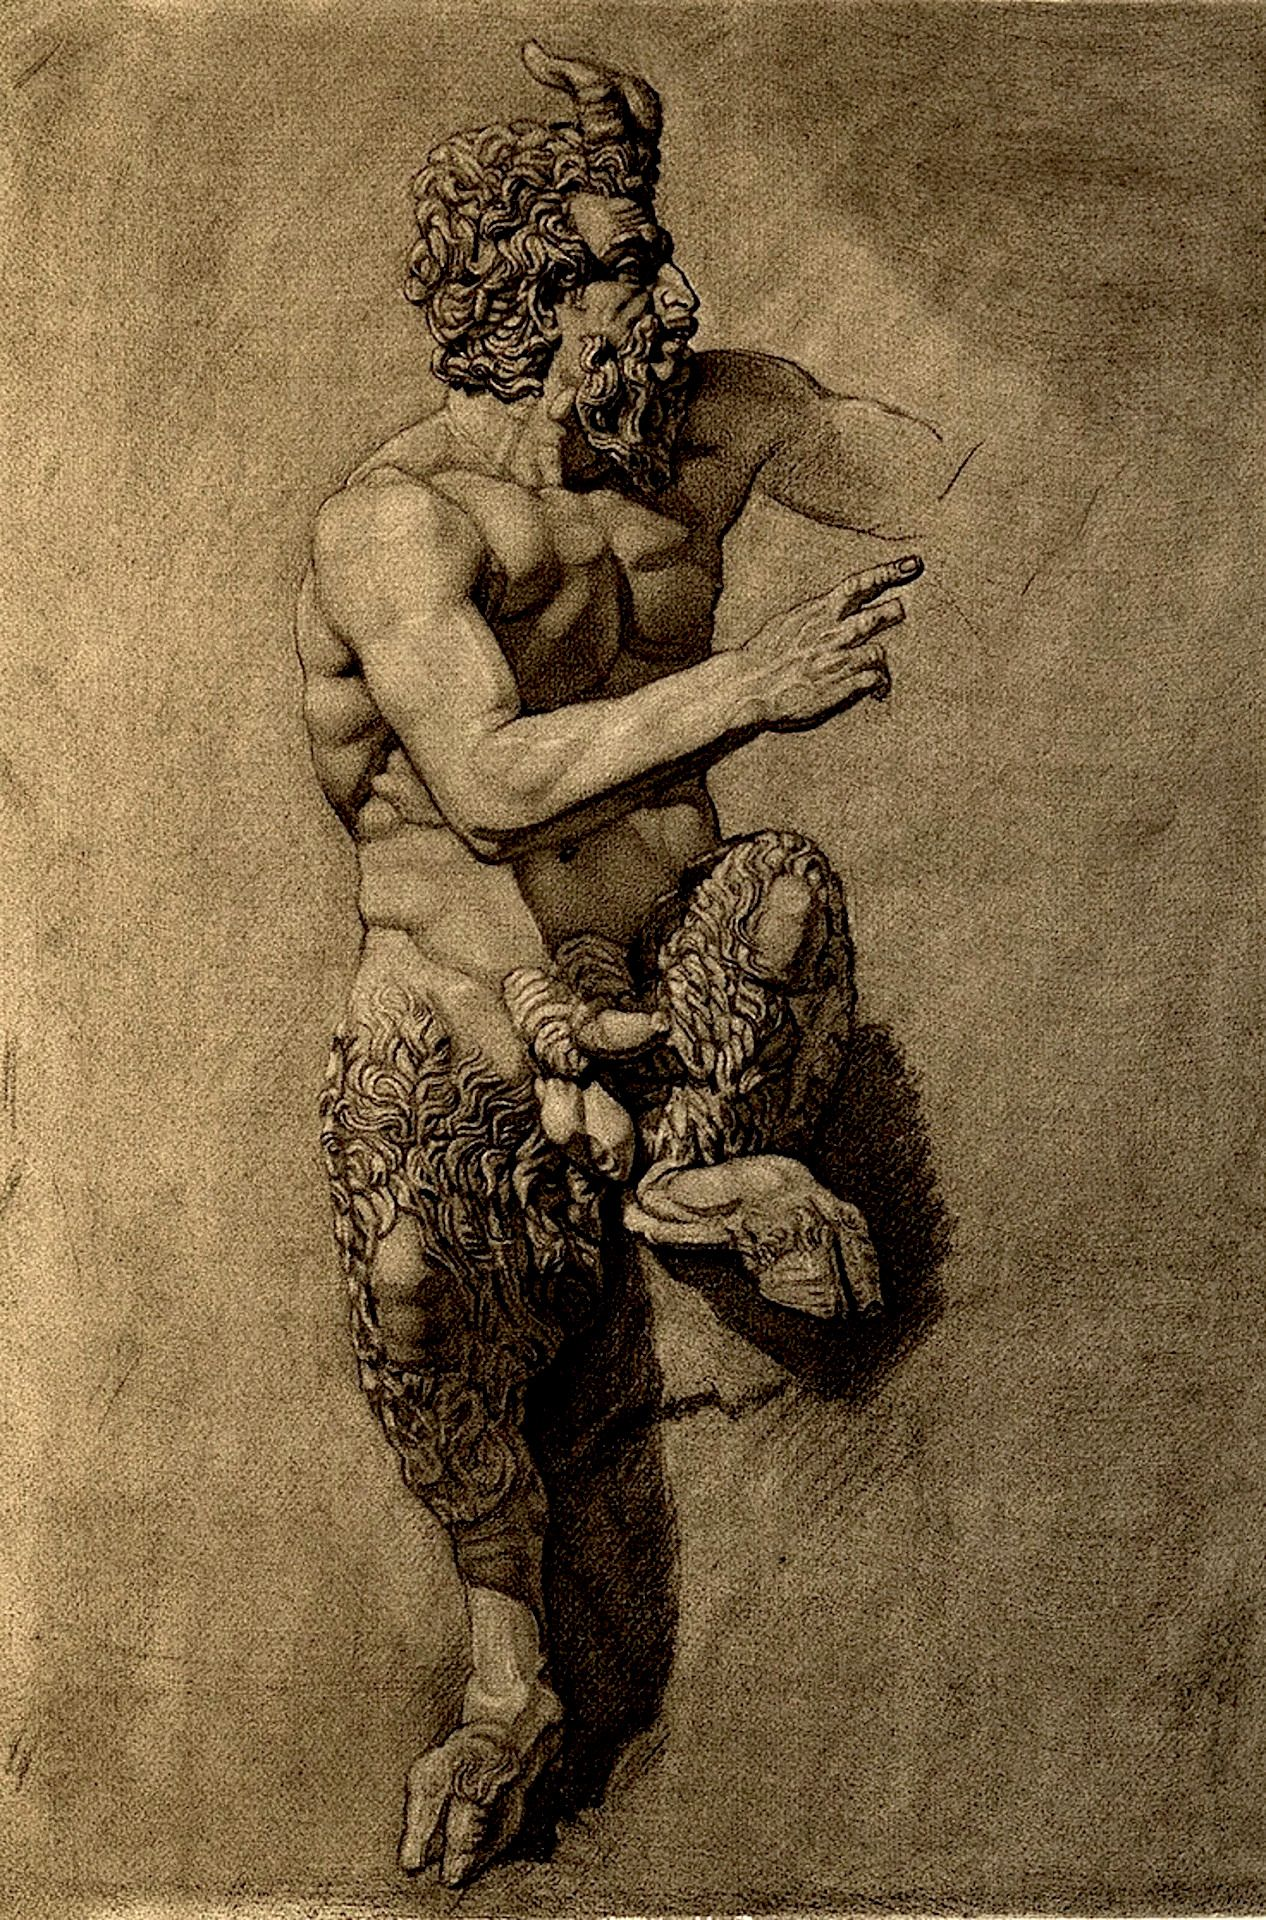 The horned god and homosexuality